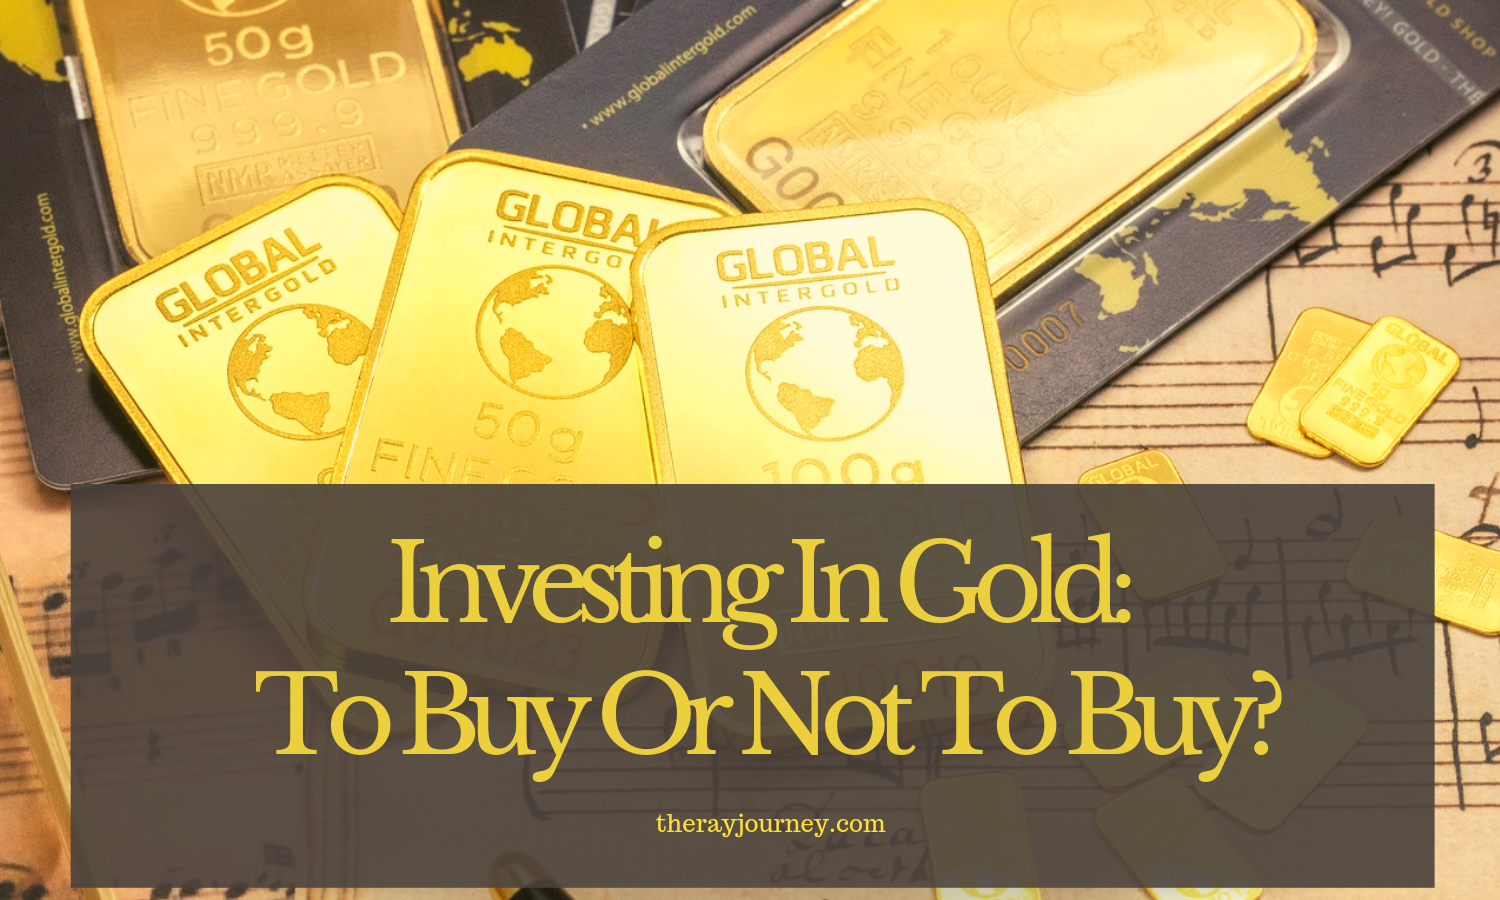 Investing In Gold In 2020: To Buy Or Not To Buy?